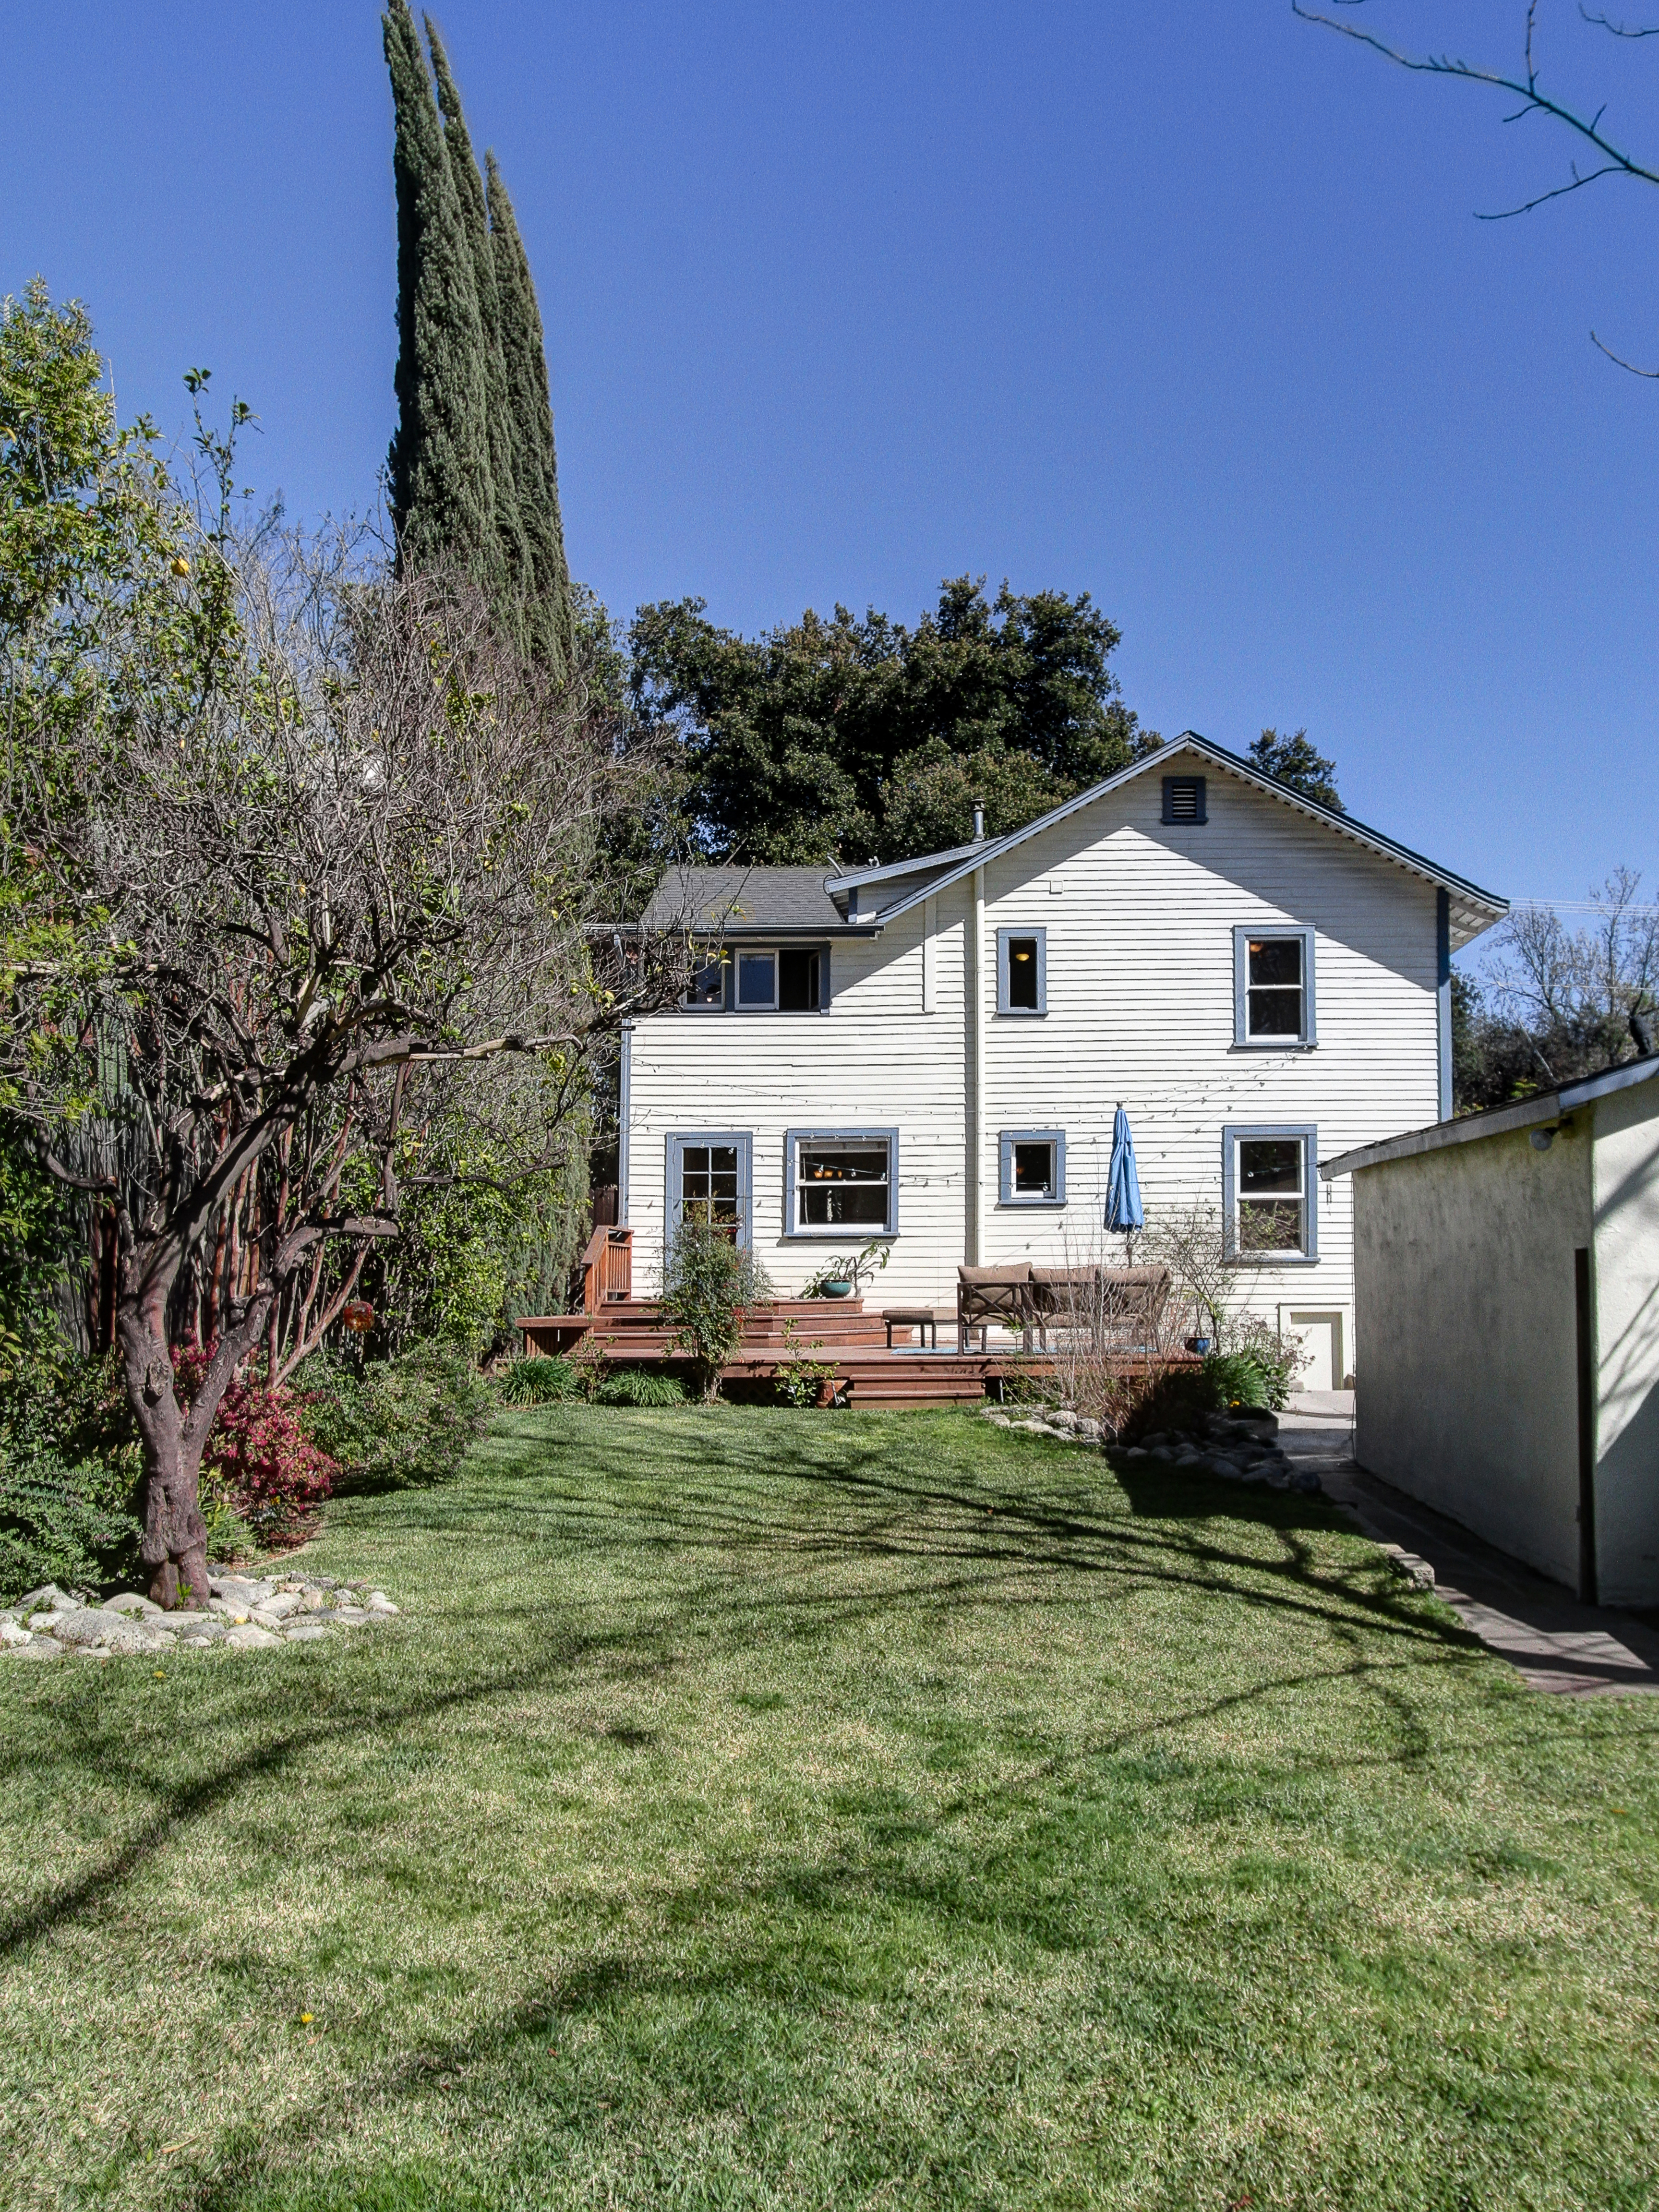 for 925k a quaint farmhouse in a historic district in pasadena